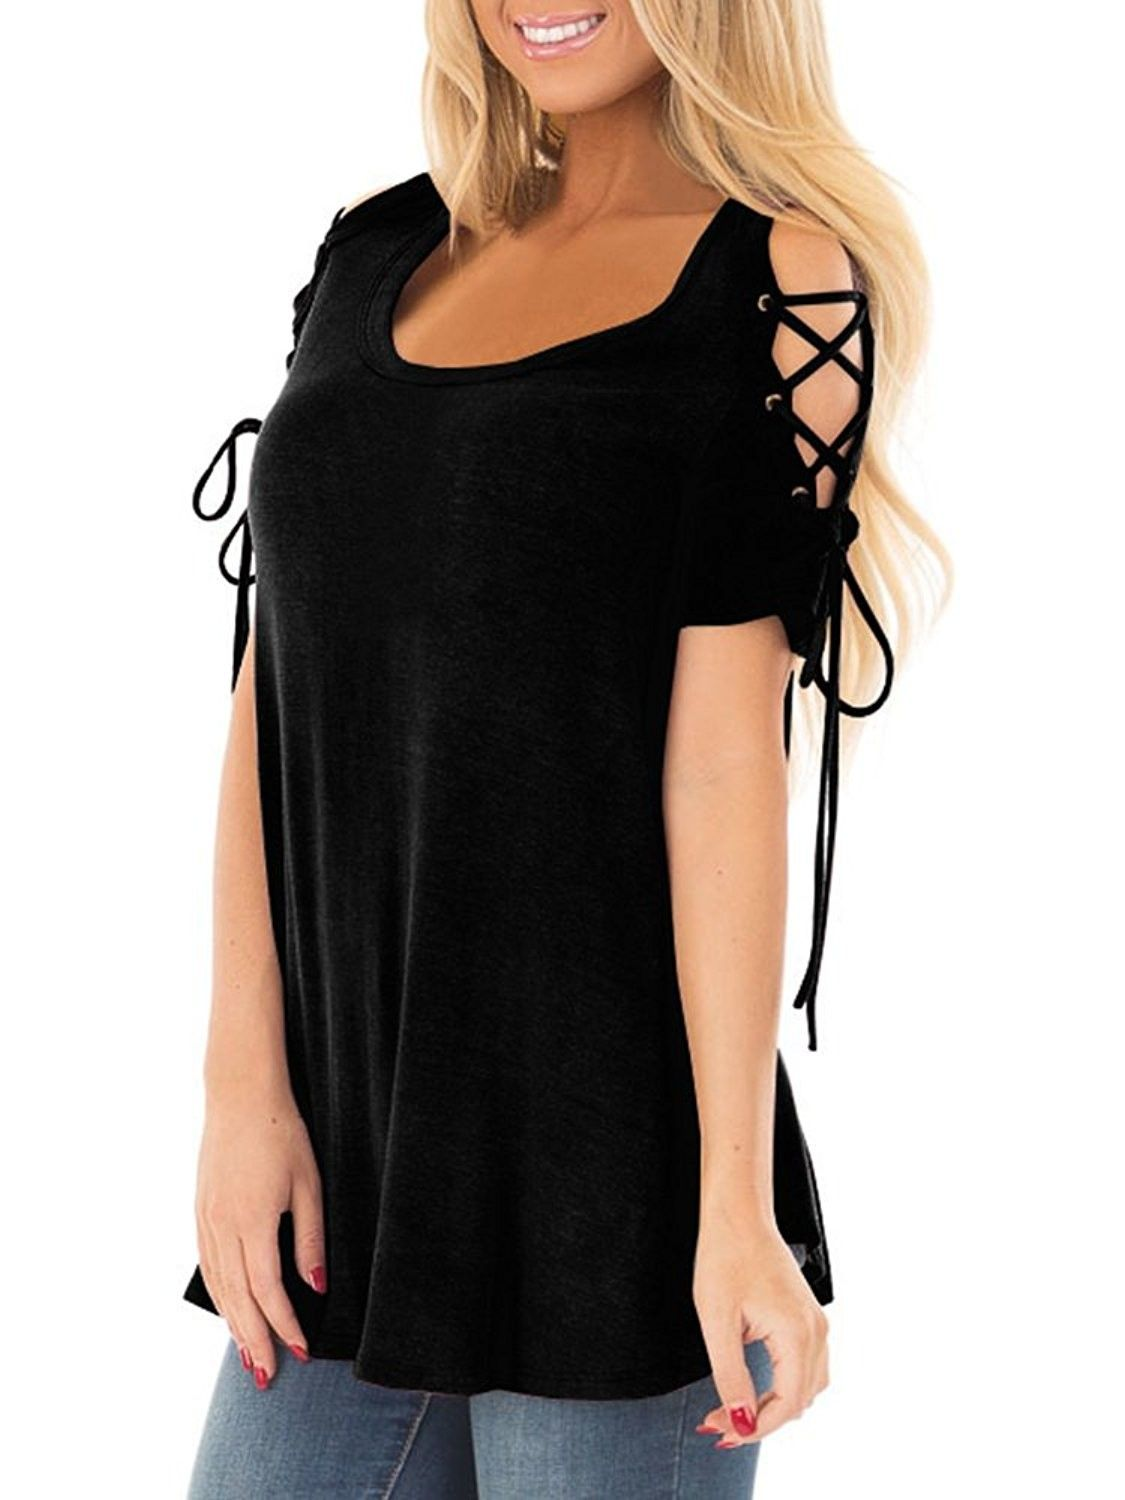 Summer Women/'s Lace Shoulder T-Shirt Short Sleeve Loose Tops Casual Blouse